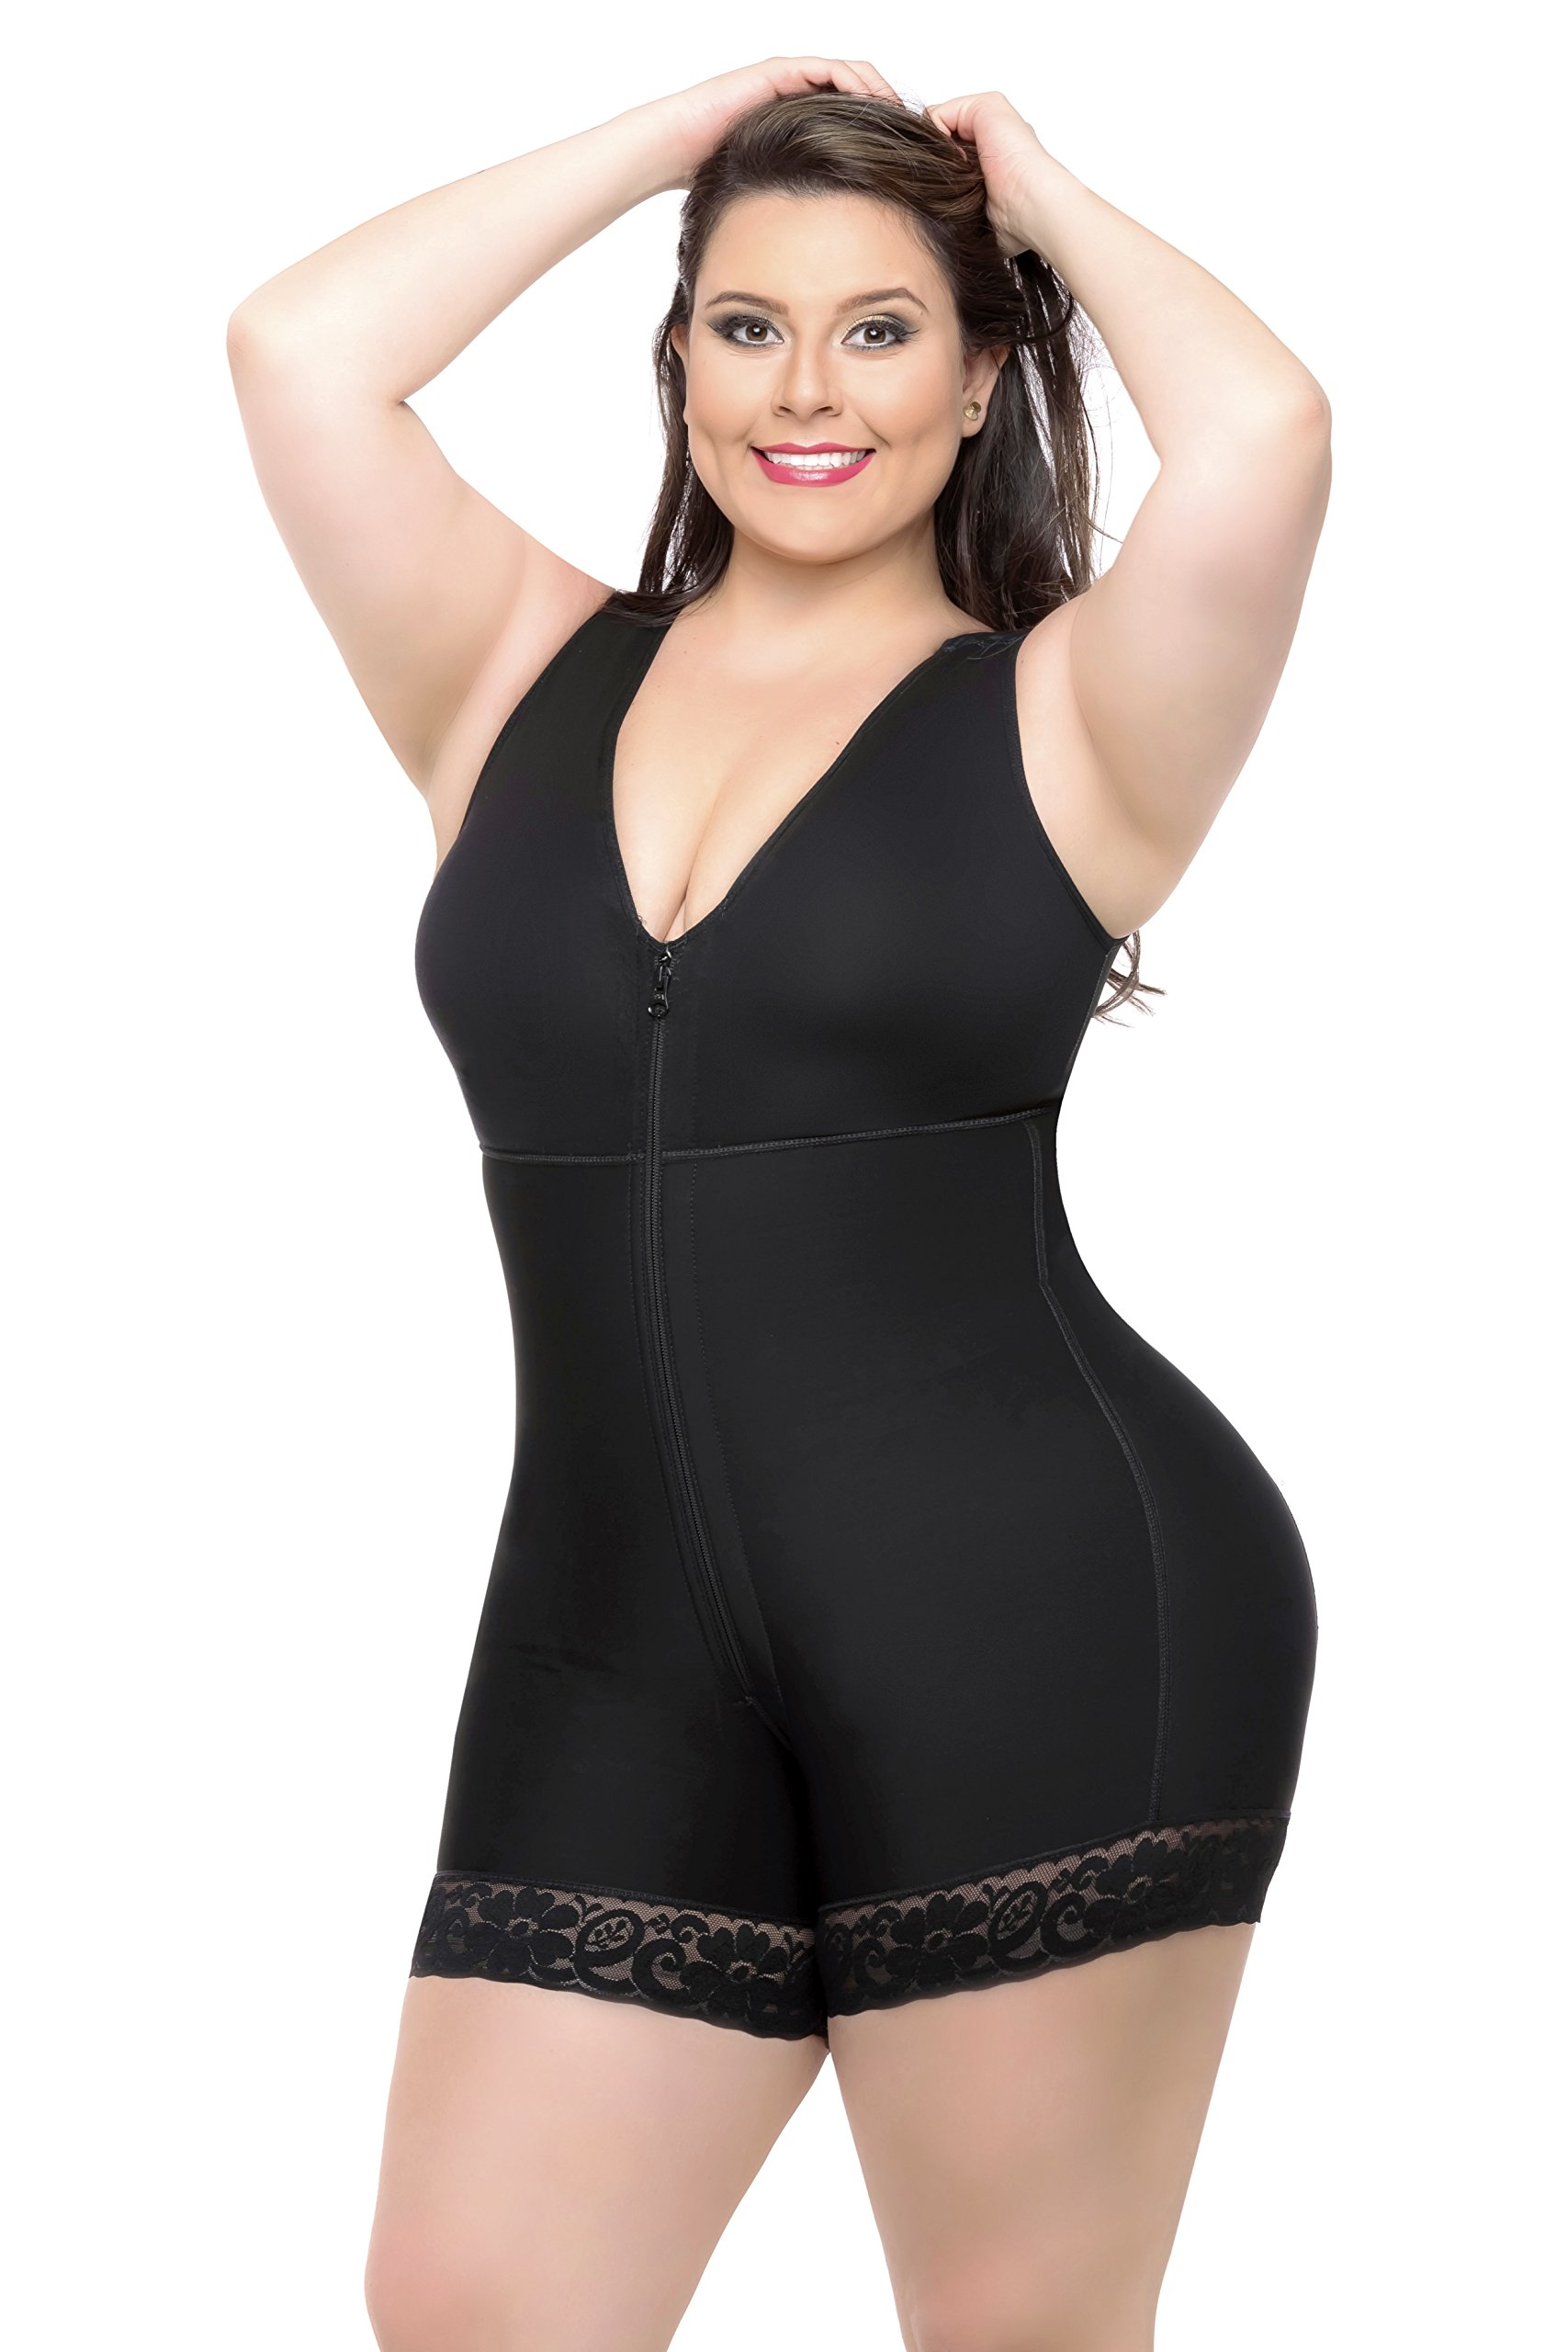 Fajas Colombianas Full Body Shaper Butt Lifter Short Style With Bra & High Back Coverage